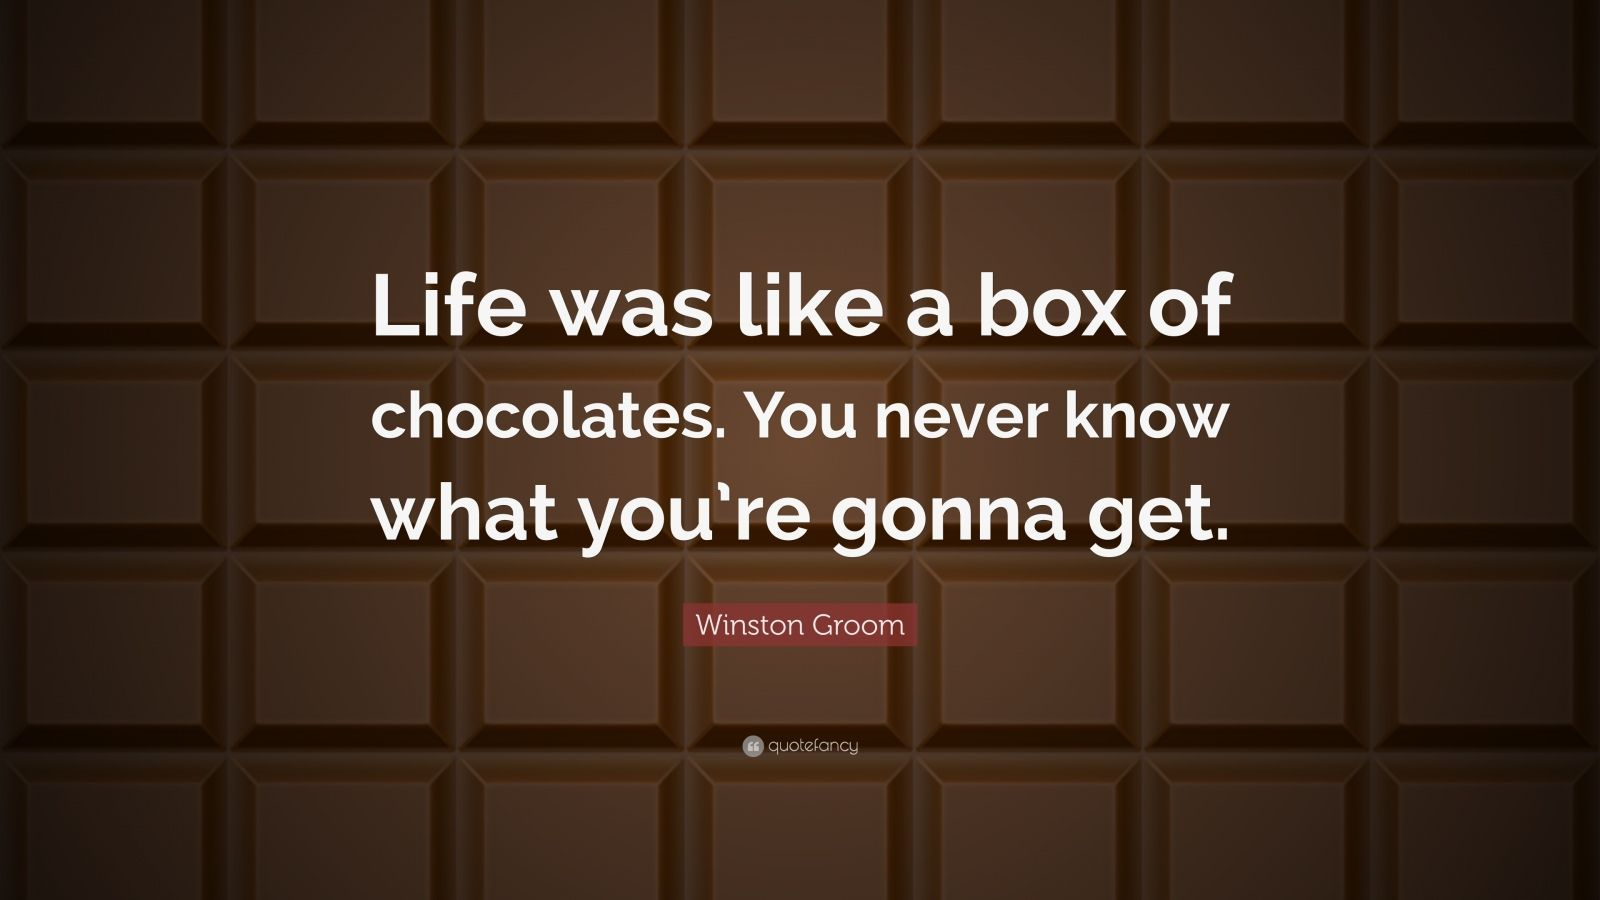 Forrest Gump Quotes Wallpaper Winston Groom Quote Life Was Like A Box Of Chocolates